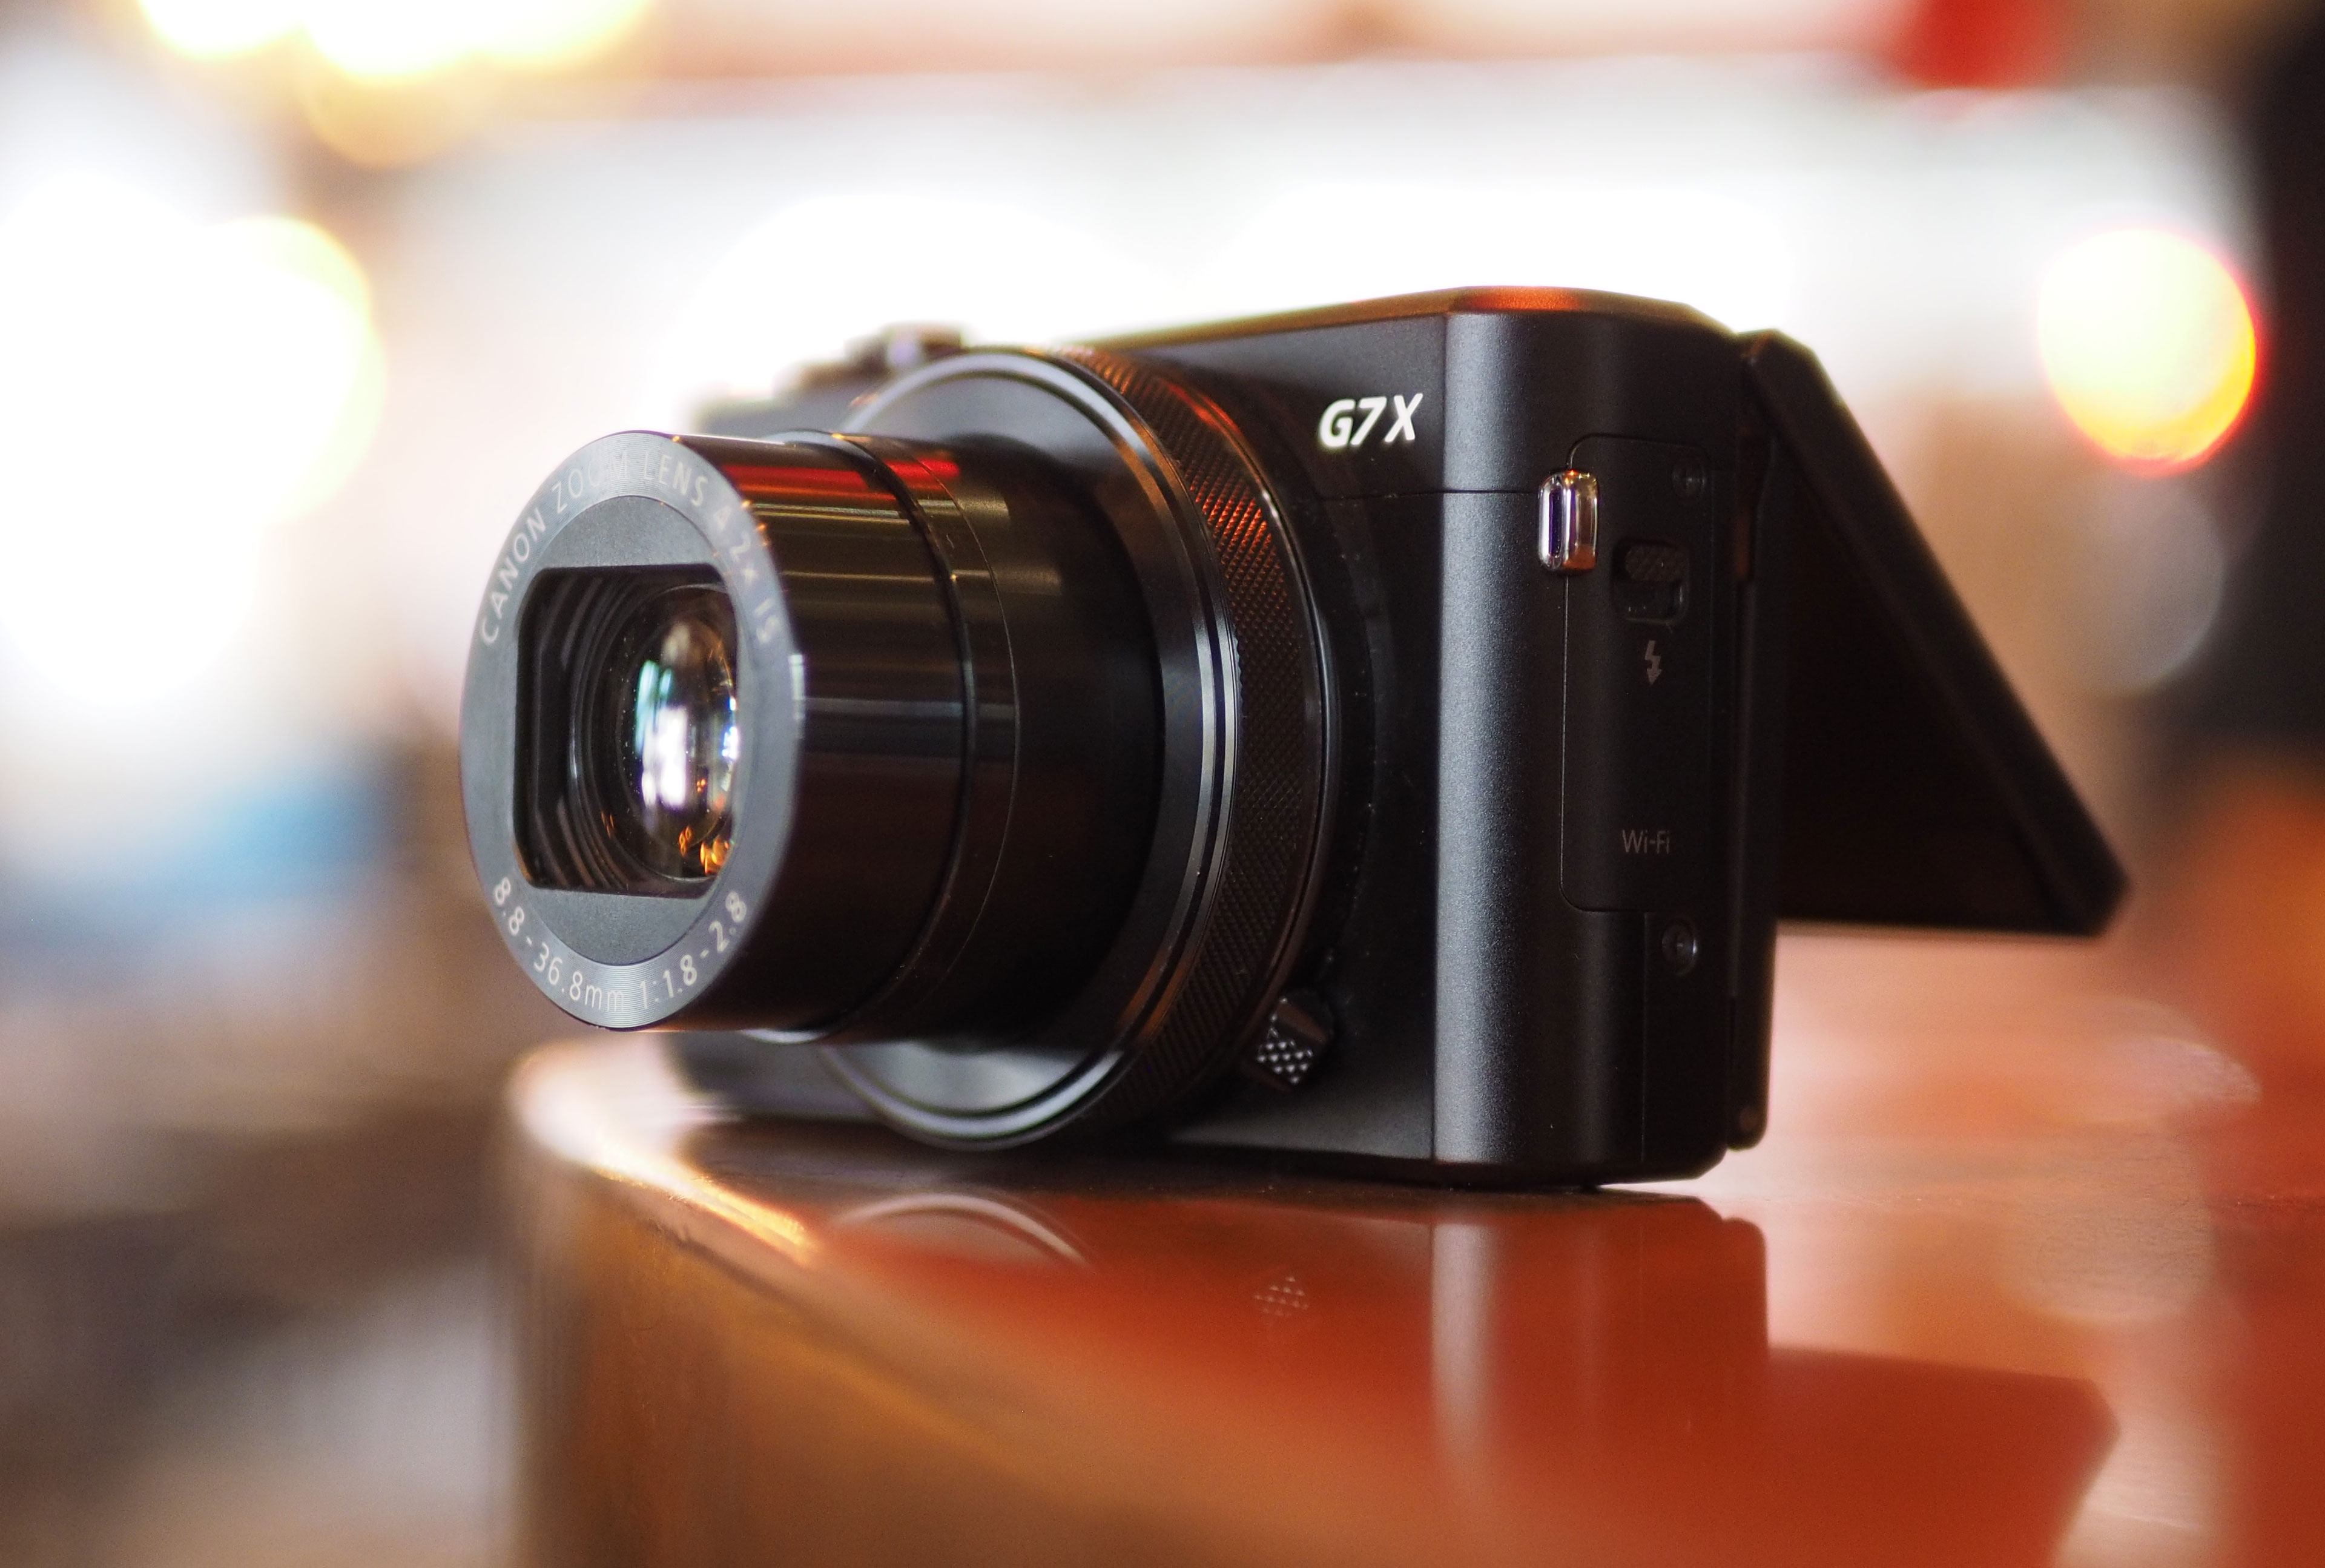 Canon Powershot G7x Mark Ii Canon Powershot G7x Mark Ii Review Cameralabs